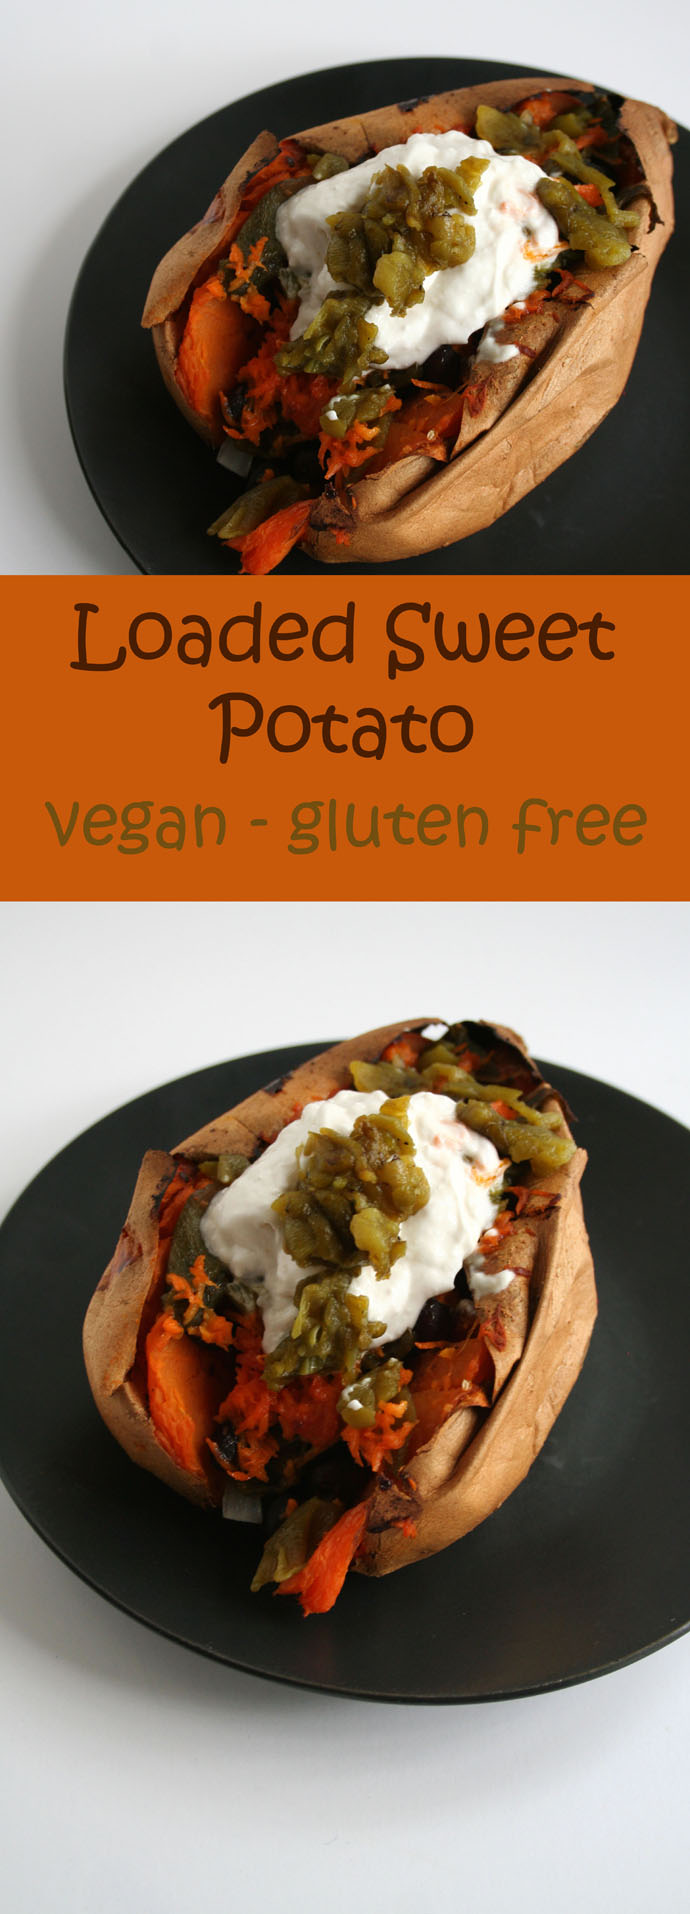 Loaded Sweet Potato collage photo with text.